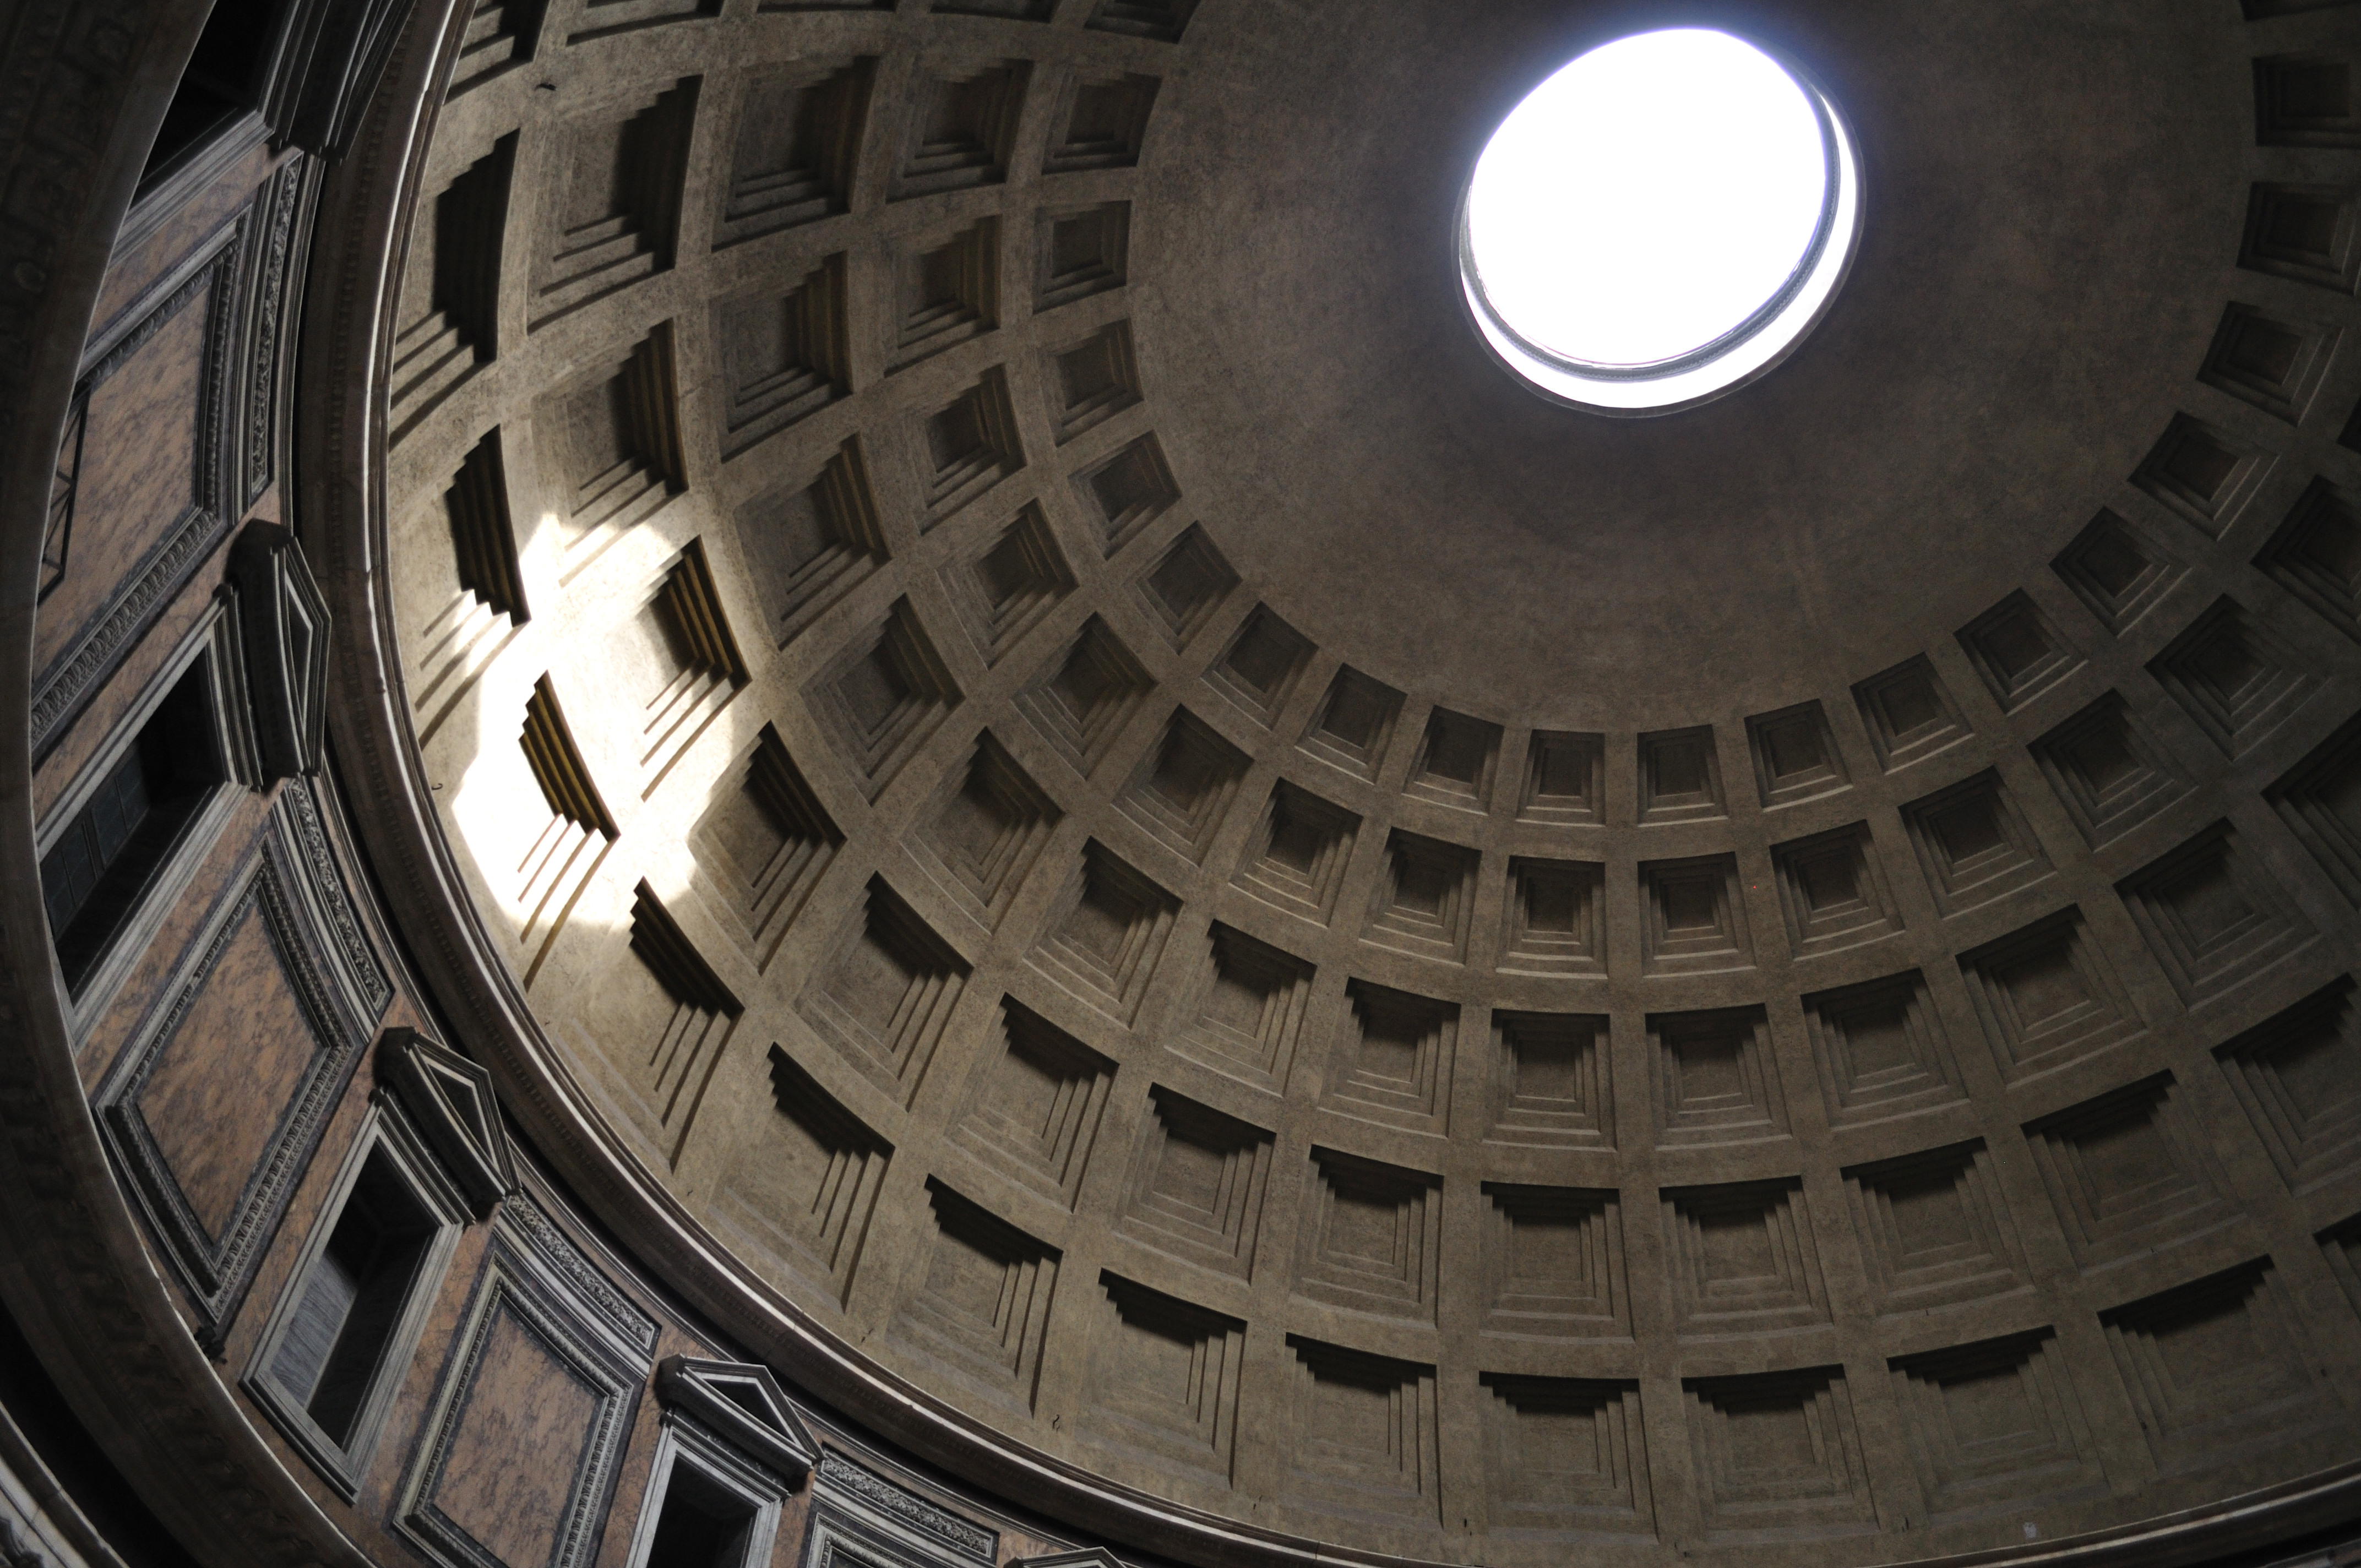 pantheon rome essay The roman pantheon is the most preserved building in rome despite all the additions and restorations to its original form the original pantheon was built in 27 bc by.